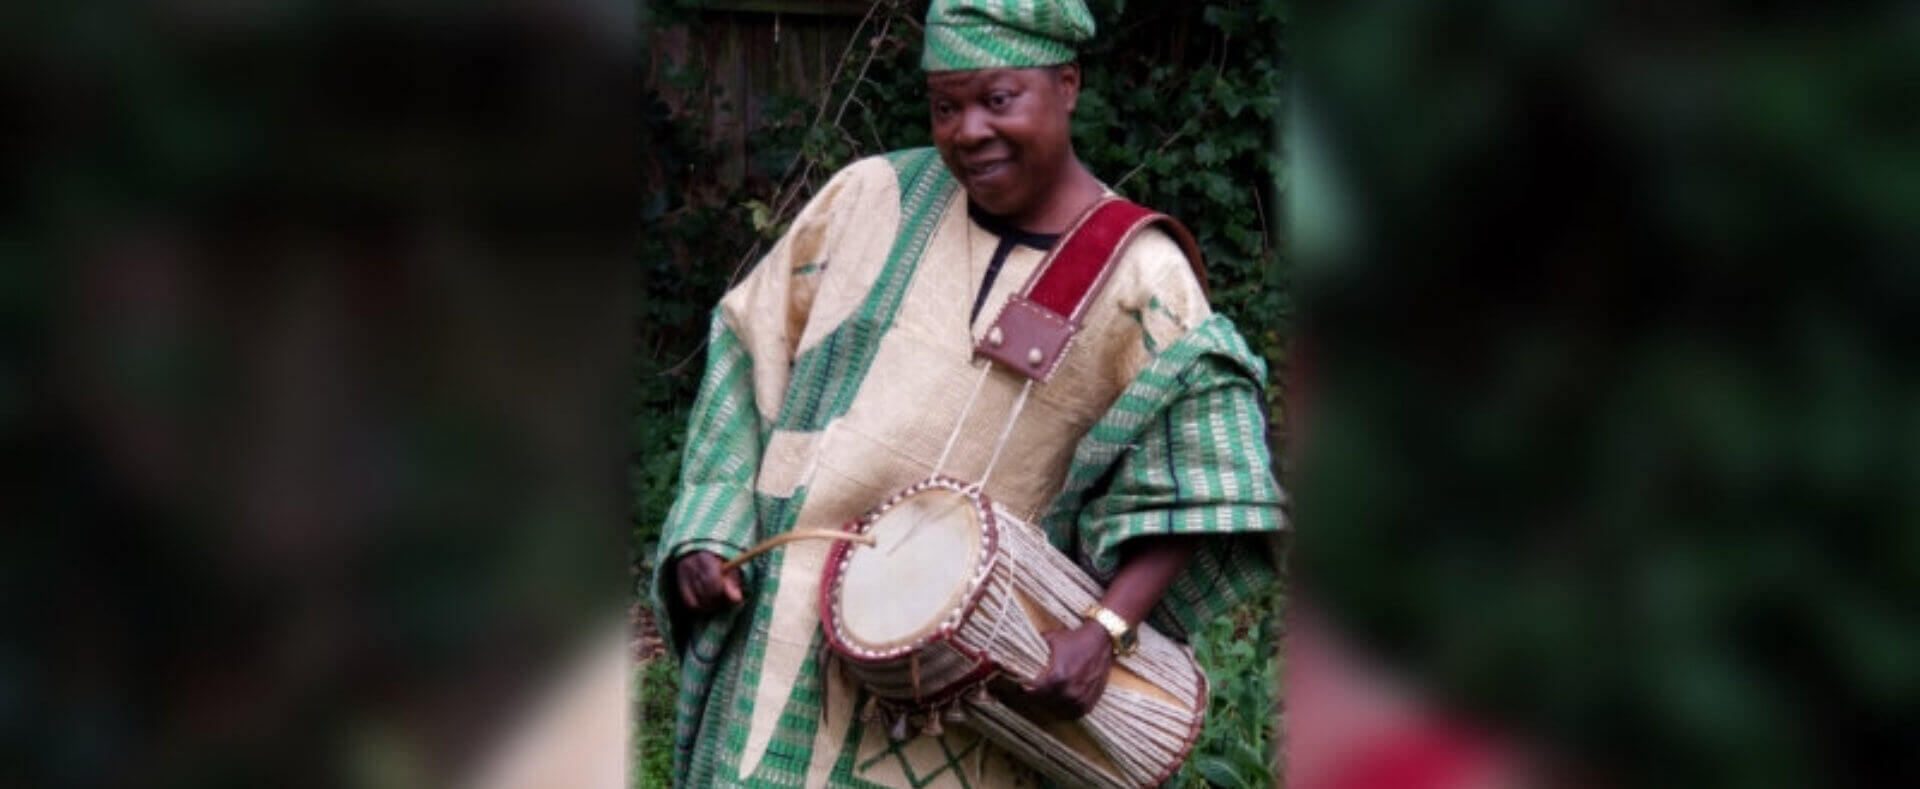 African Drummer playing the djembe